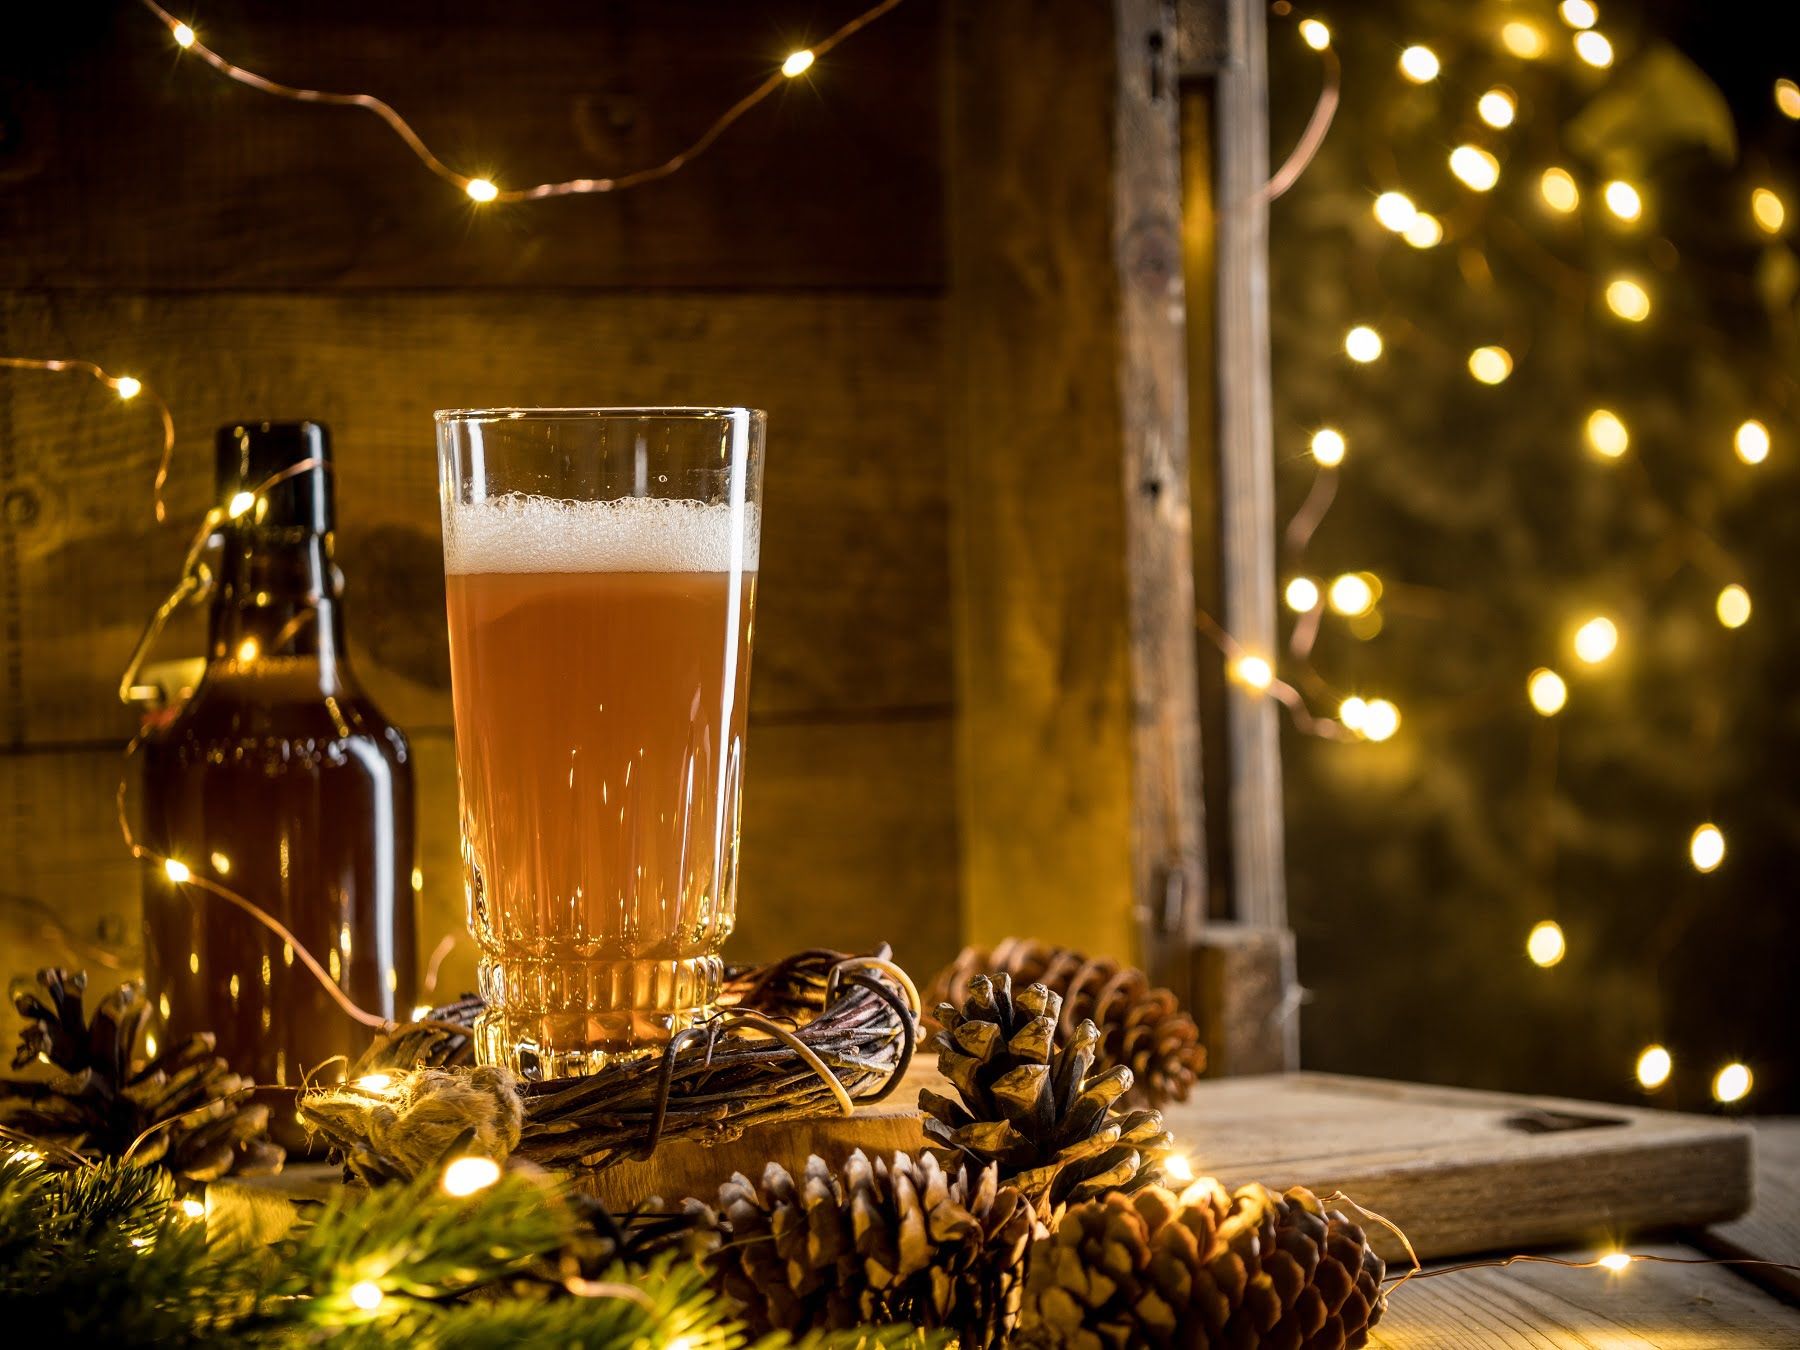 Beer in glass on wooden background with Christmas lights and pine cones